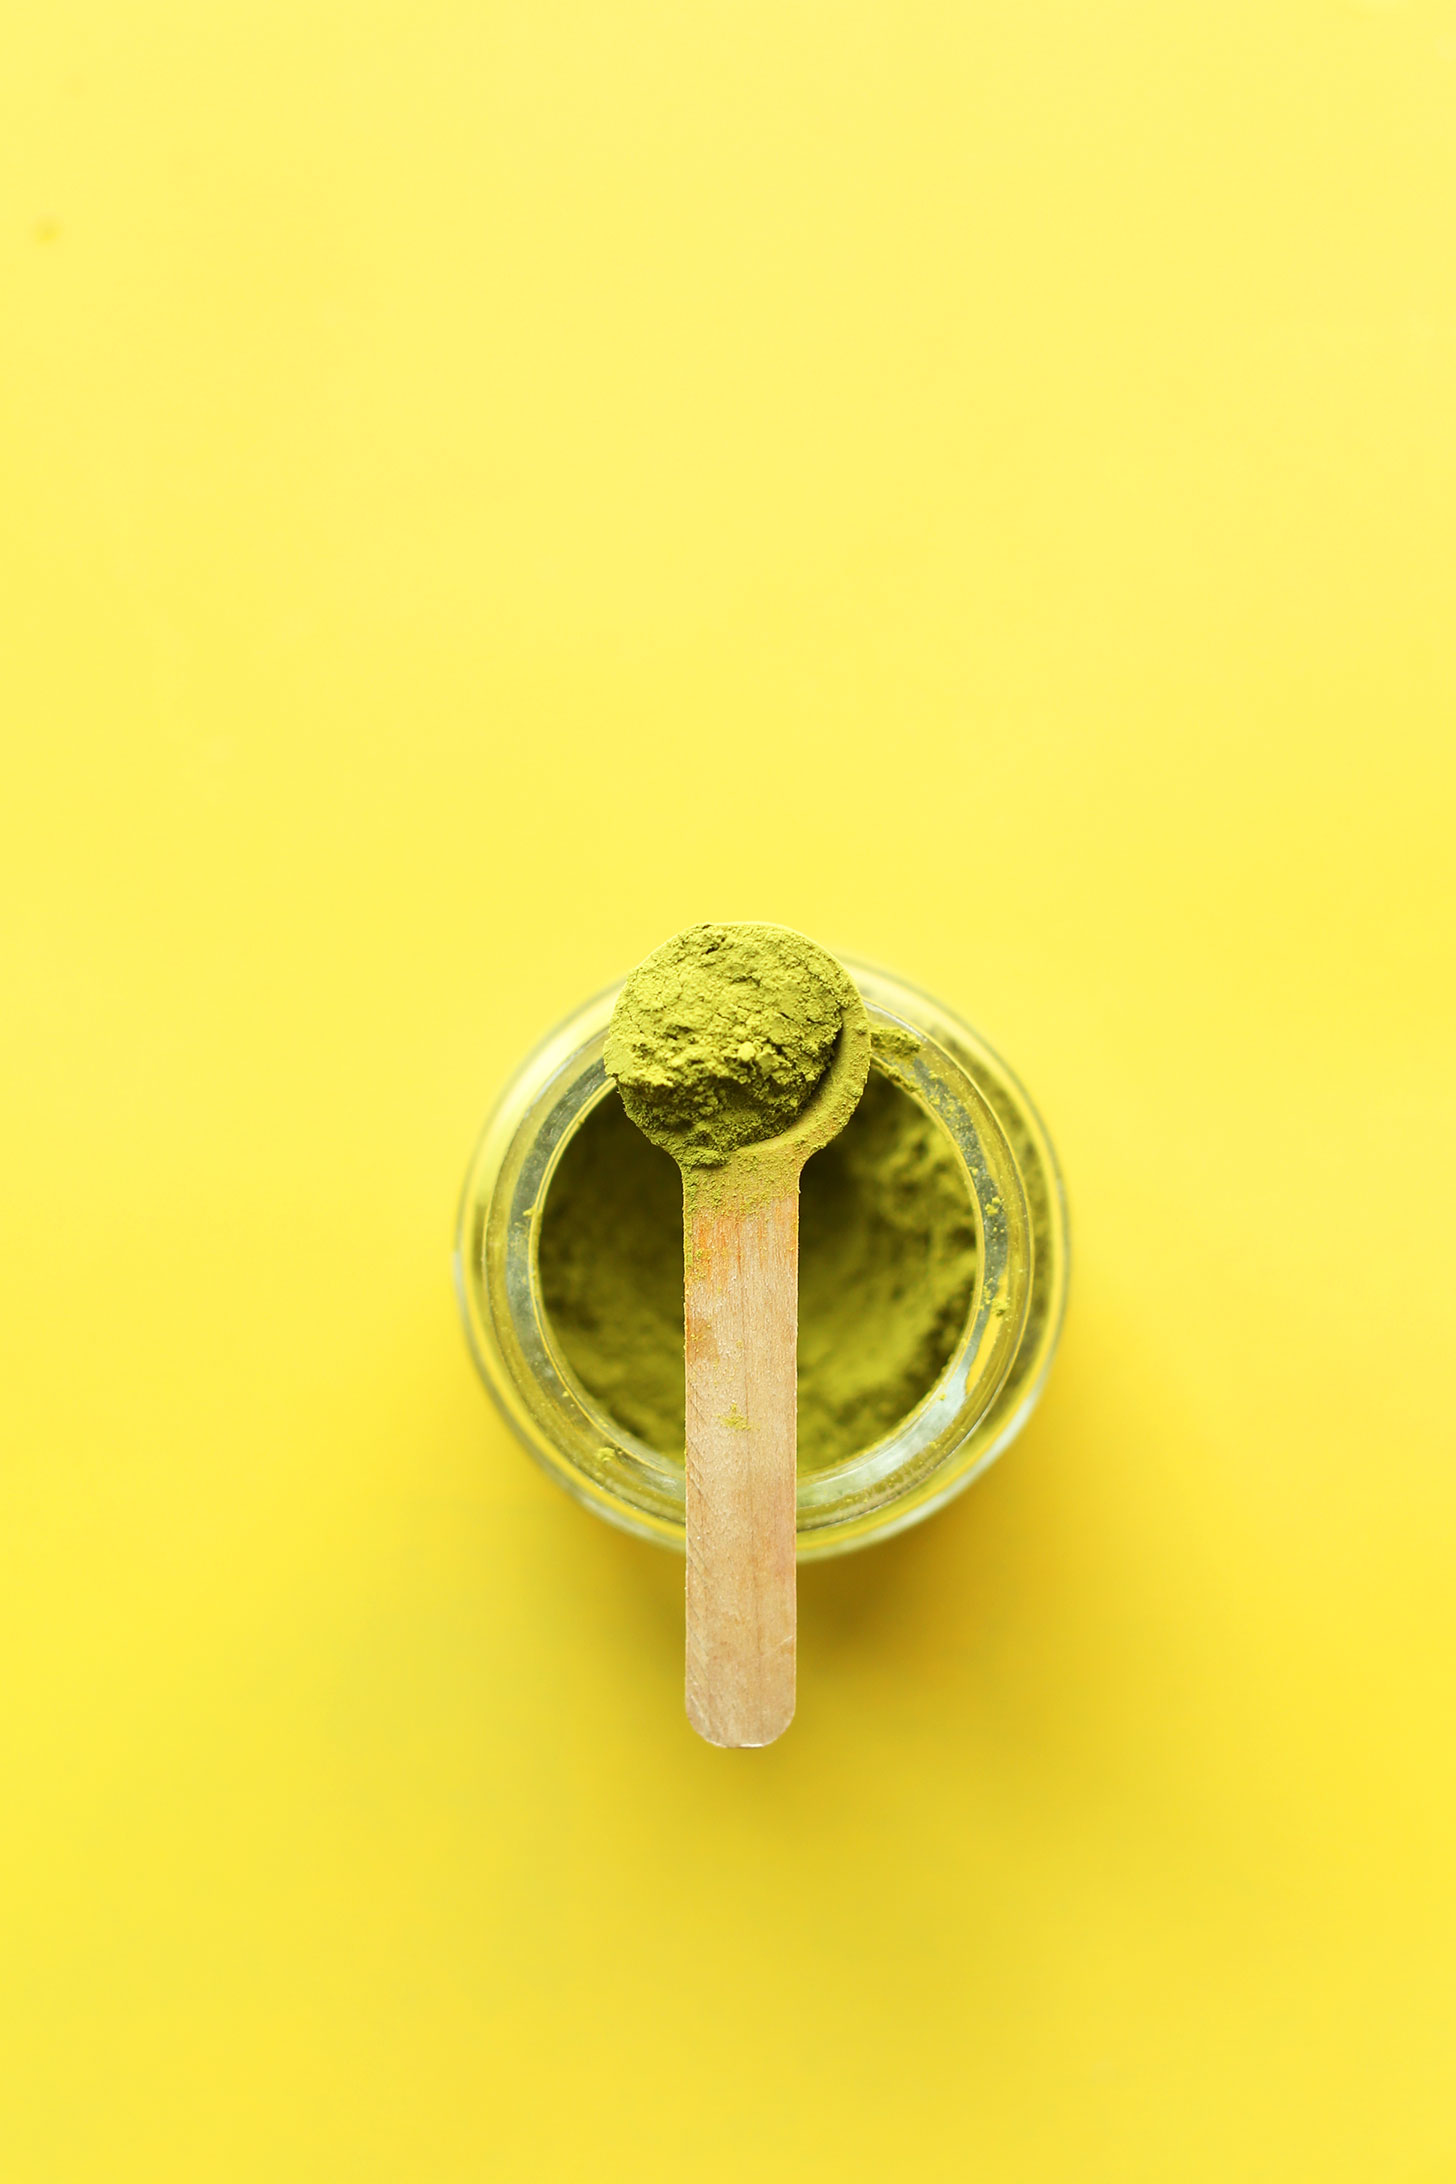 Small scoop of matcha resting on a jar